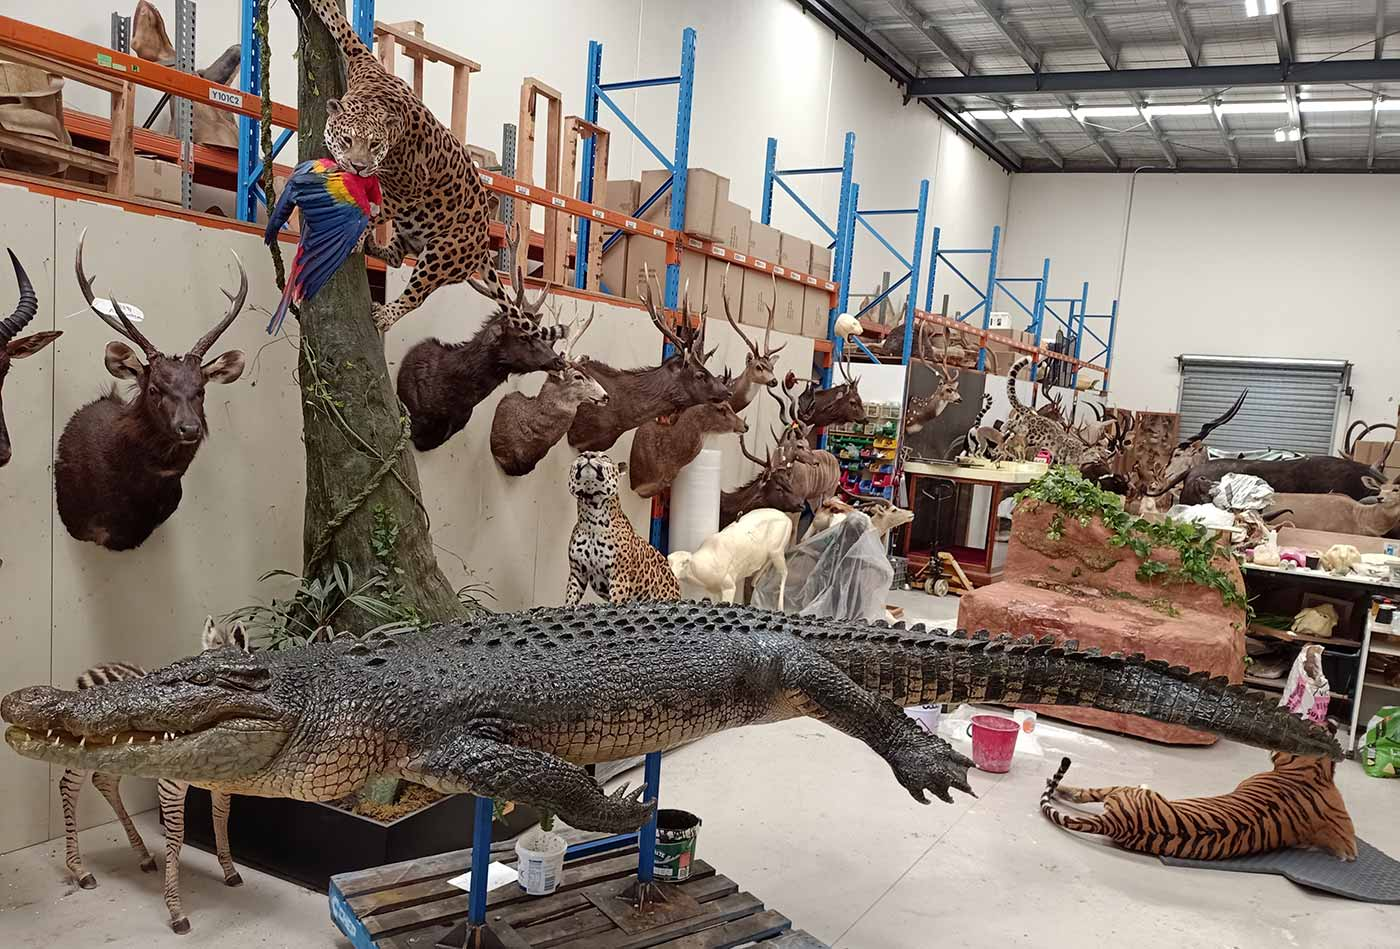 Large warehouse containing multiple taxidermy animals including a crocodile, wild cats and deer.